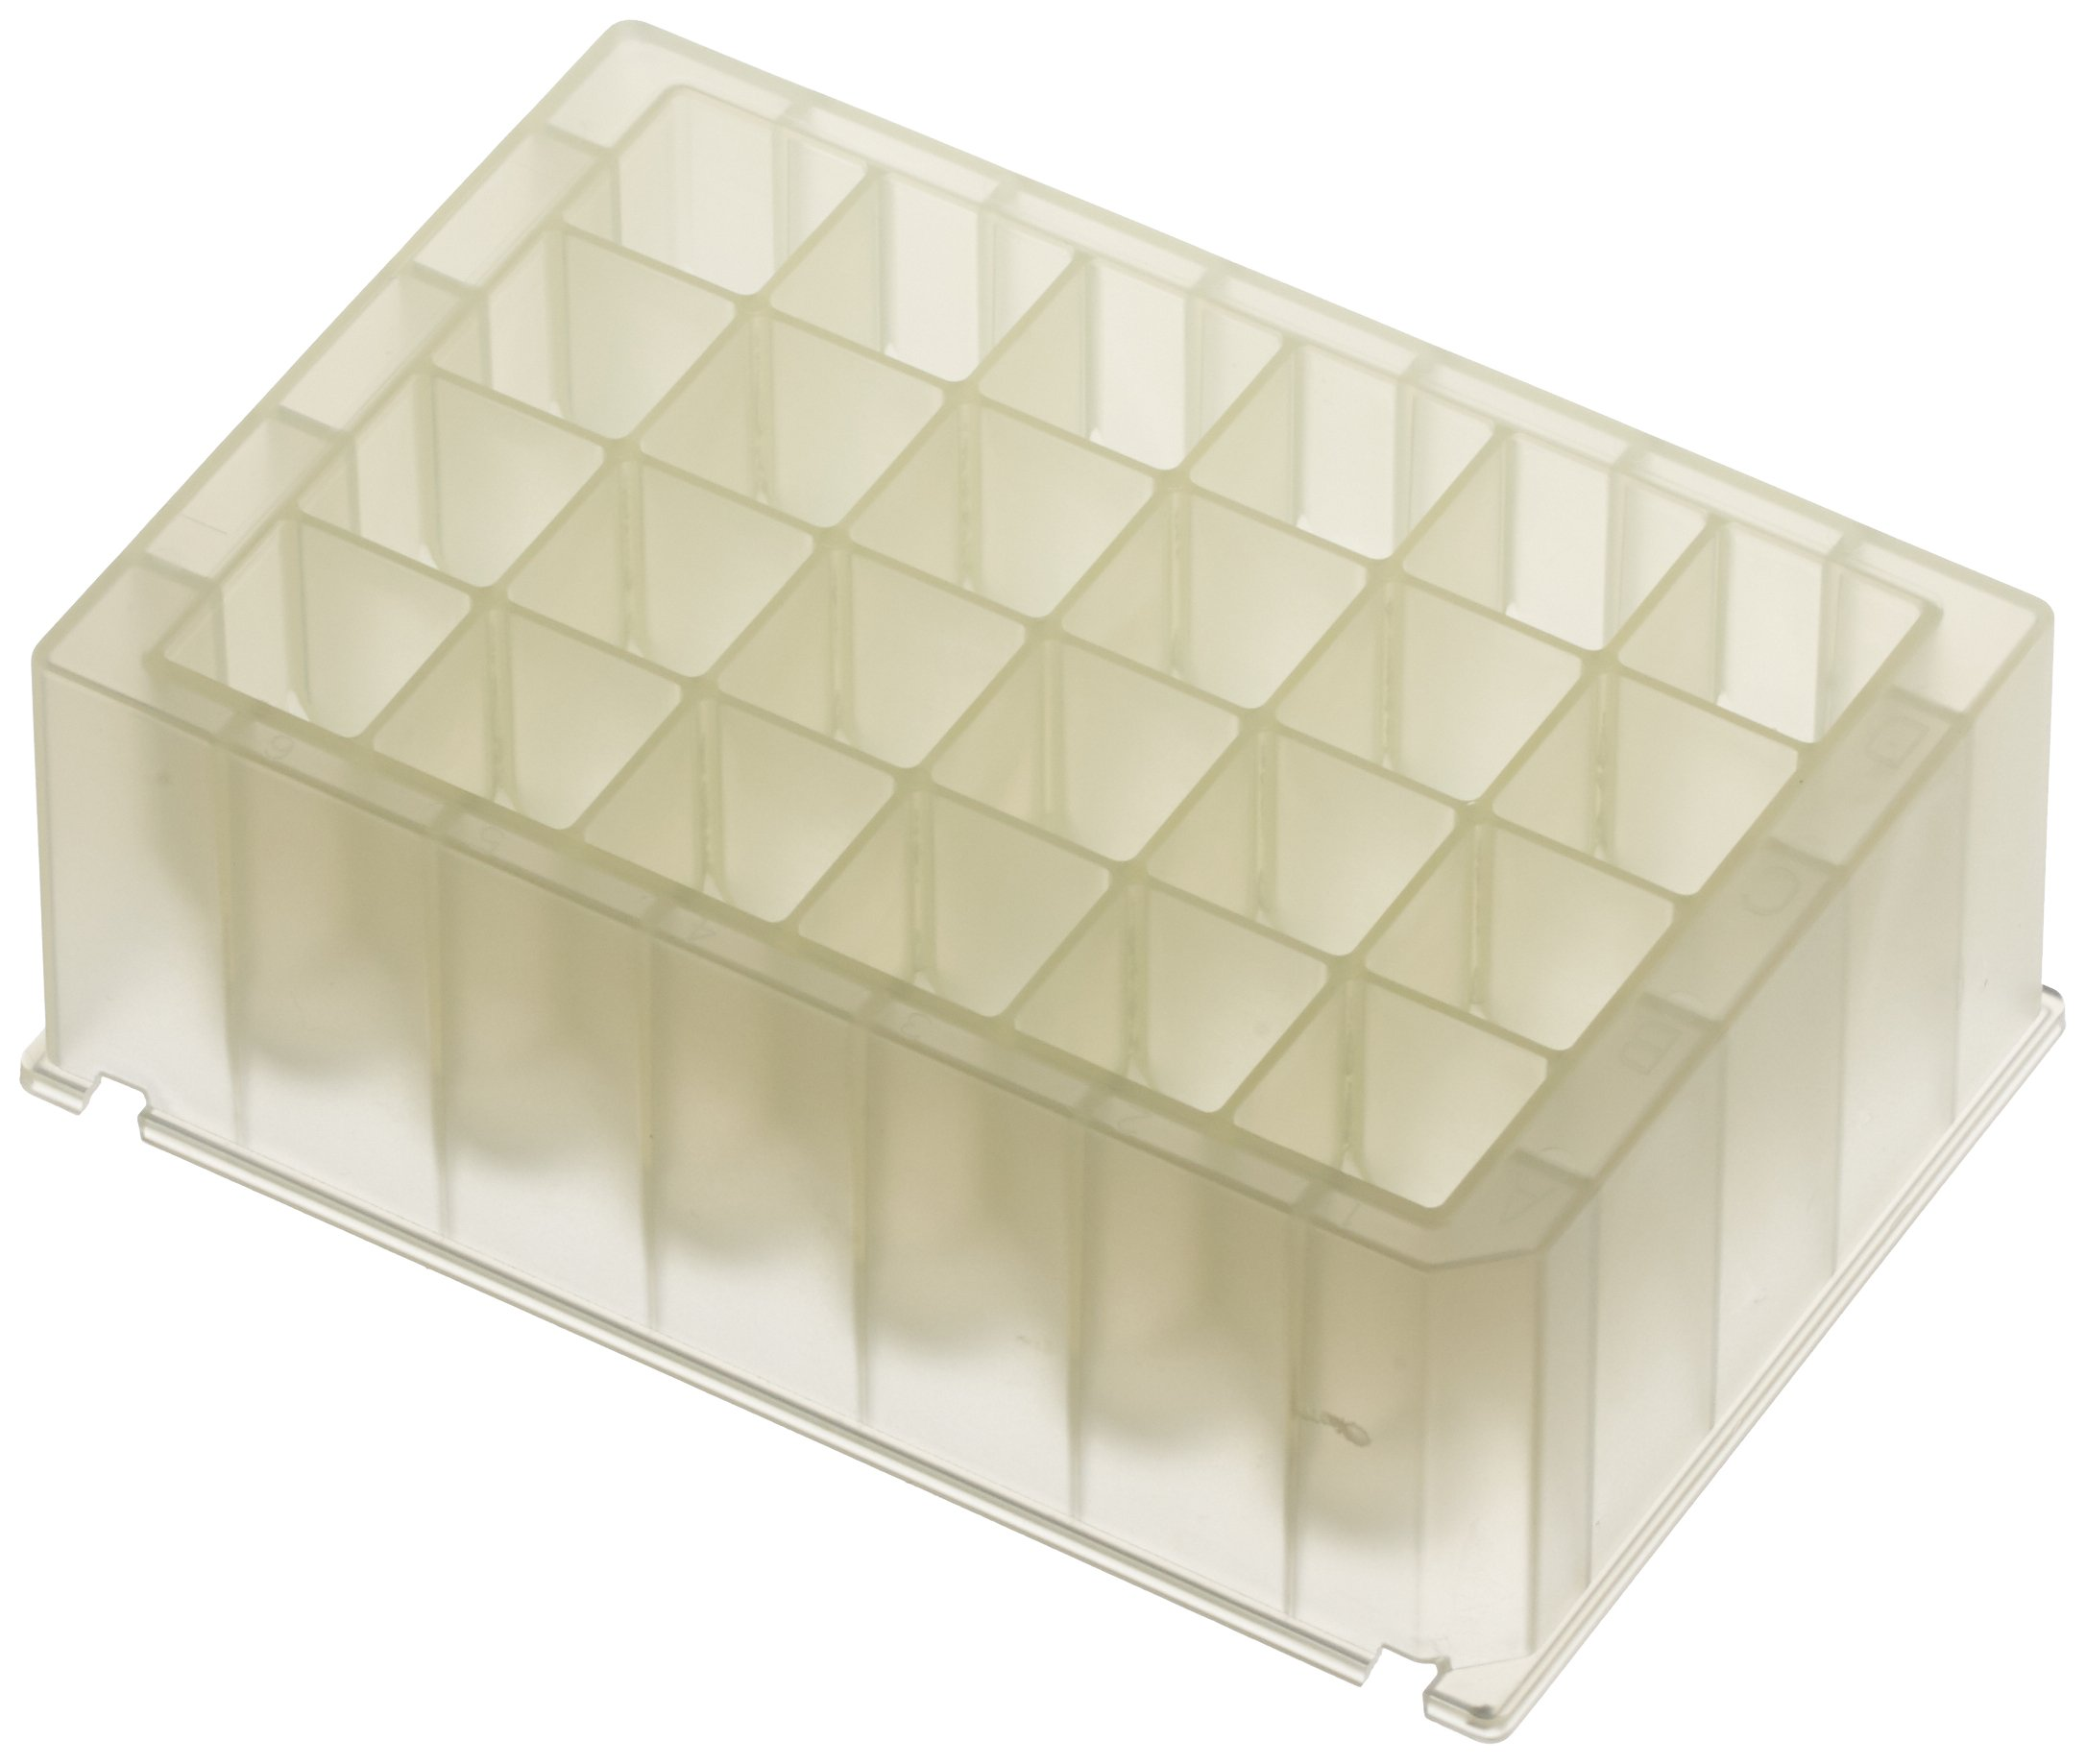 Molecular Bio Products (Auto Equip) 95040480 KingFisher Flex Systems Consumable 24 Deep-Well Plate, Sterile (Pack of 50)